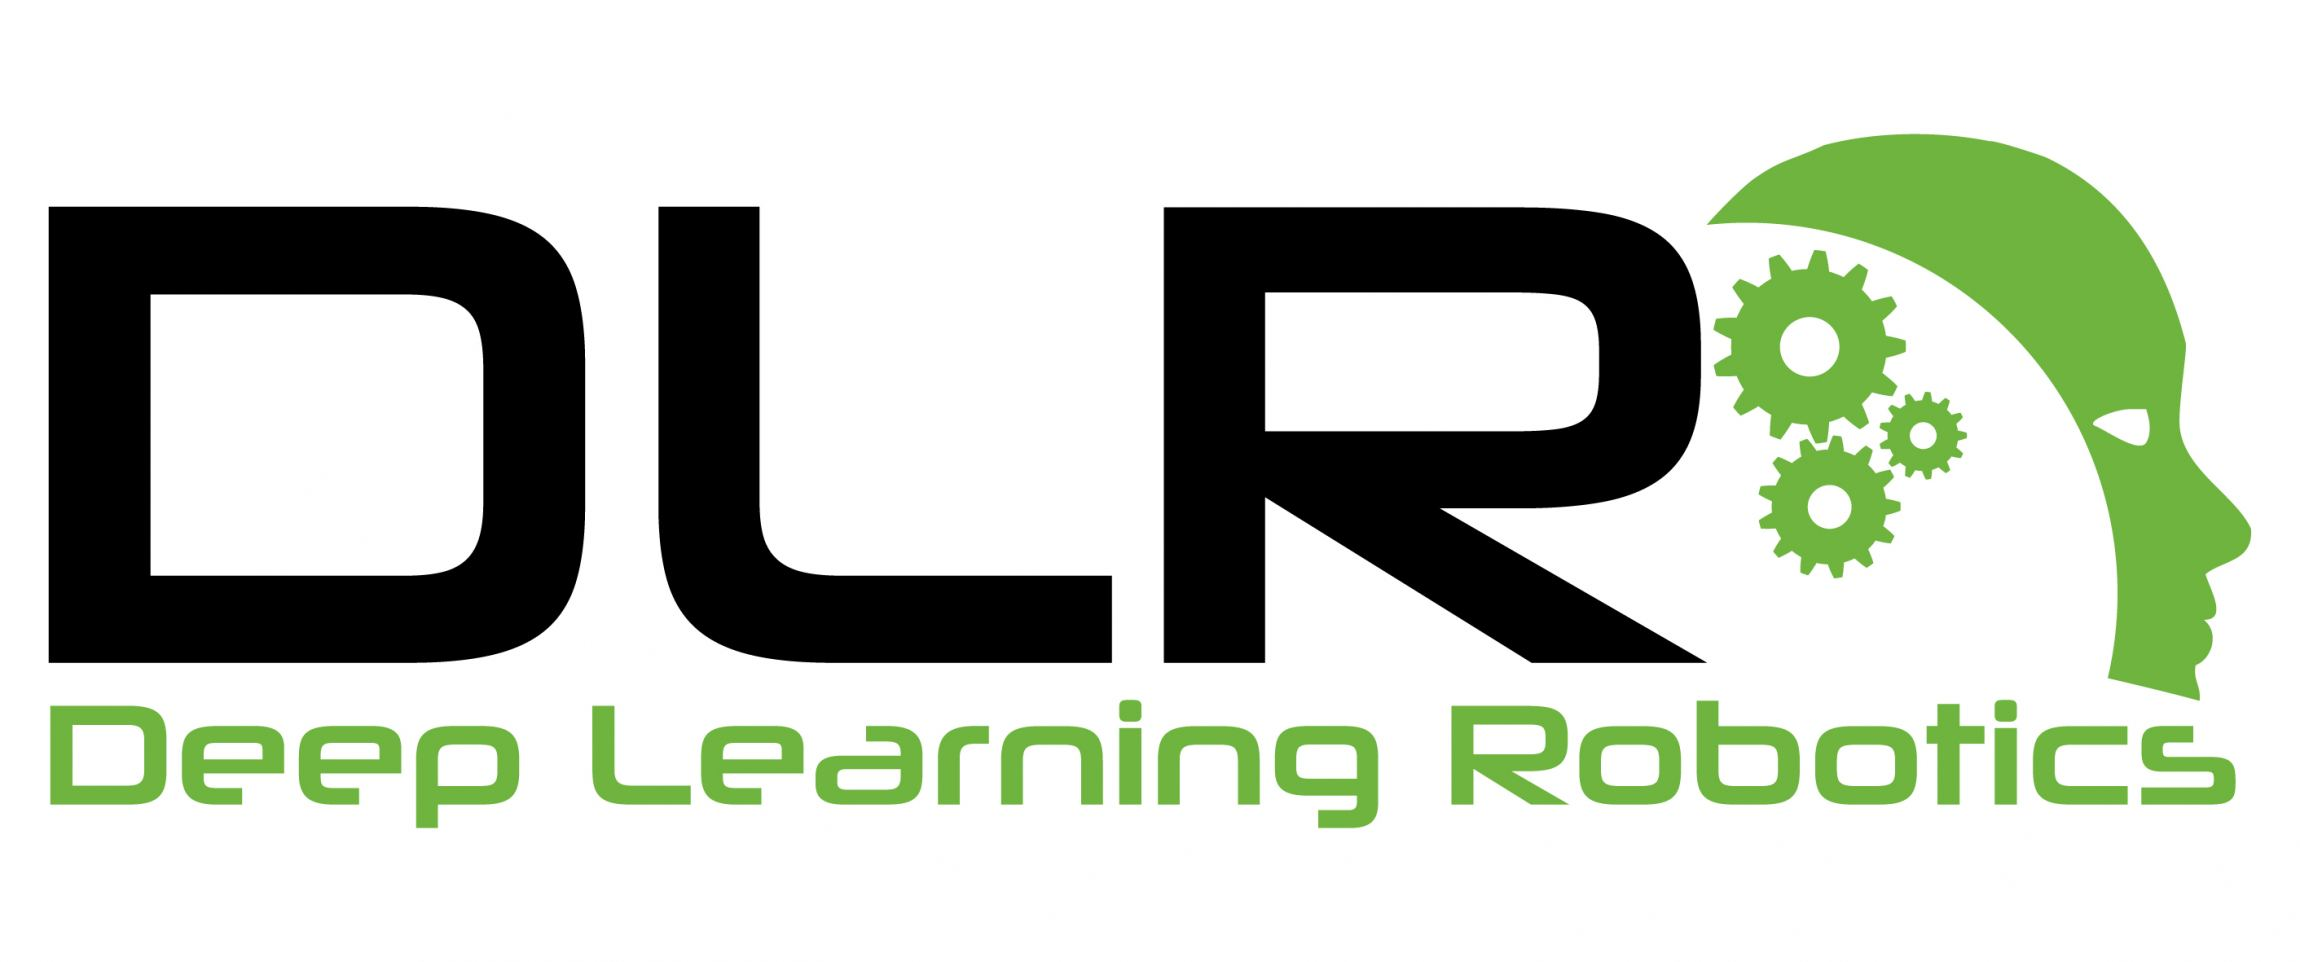 Deep Learning Robotics, Ltd. Logo